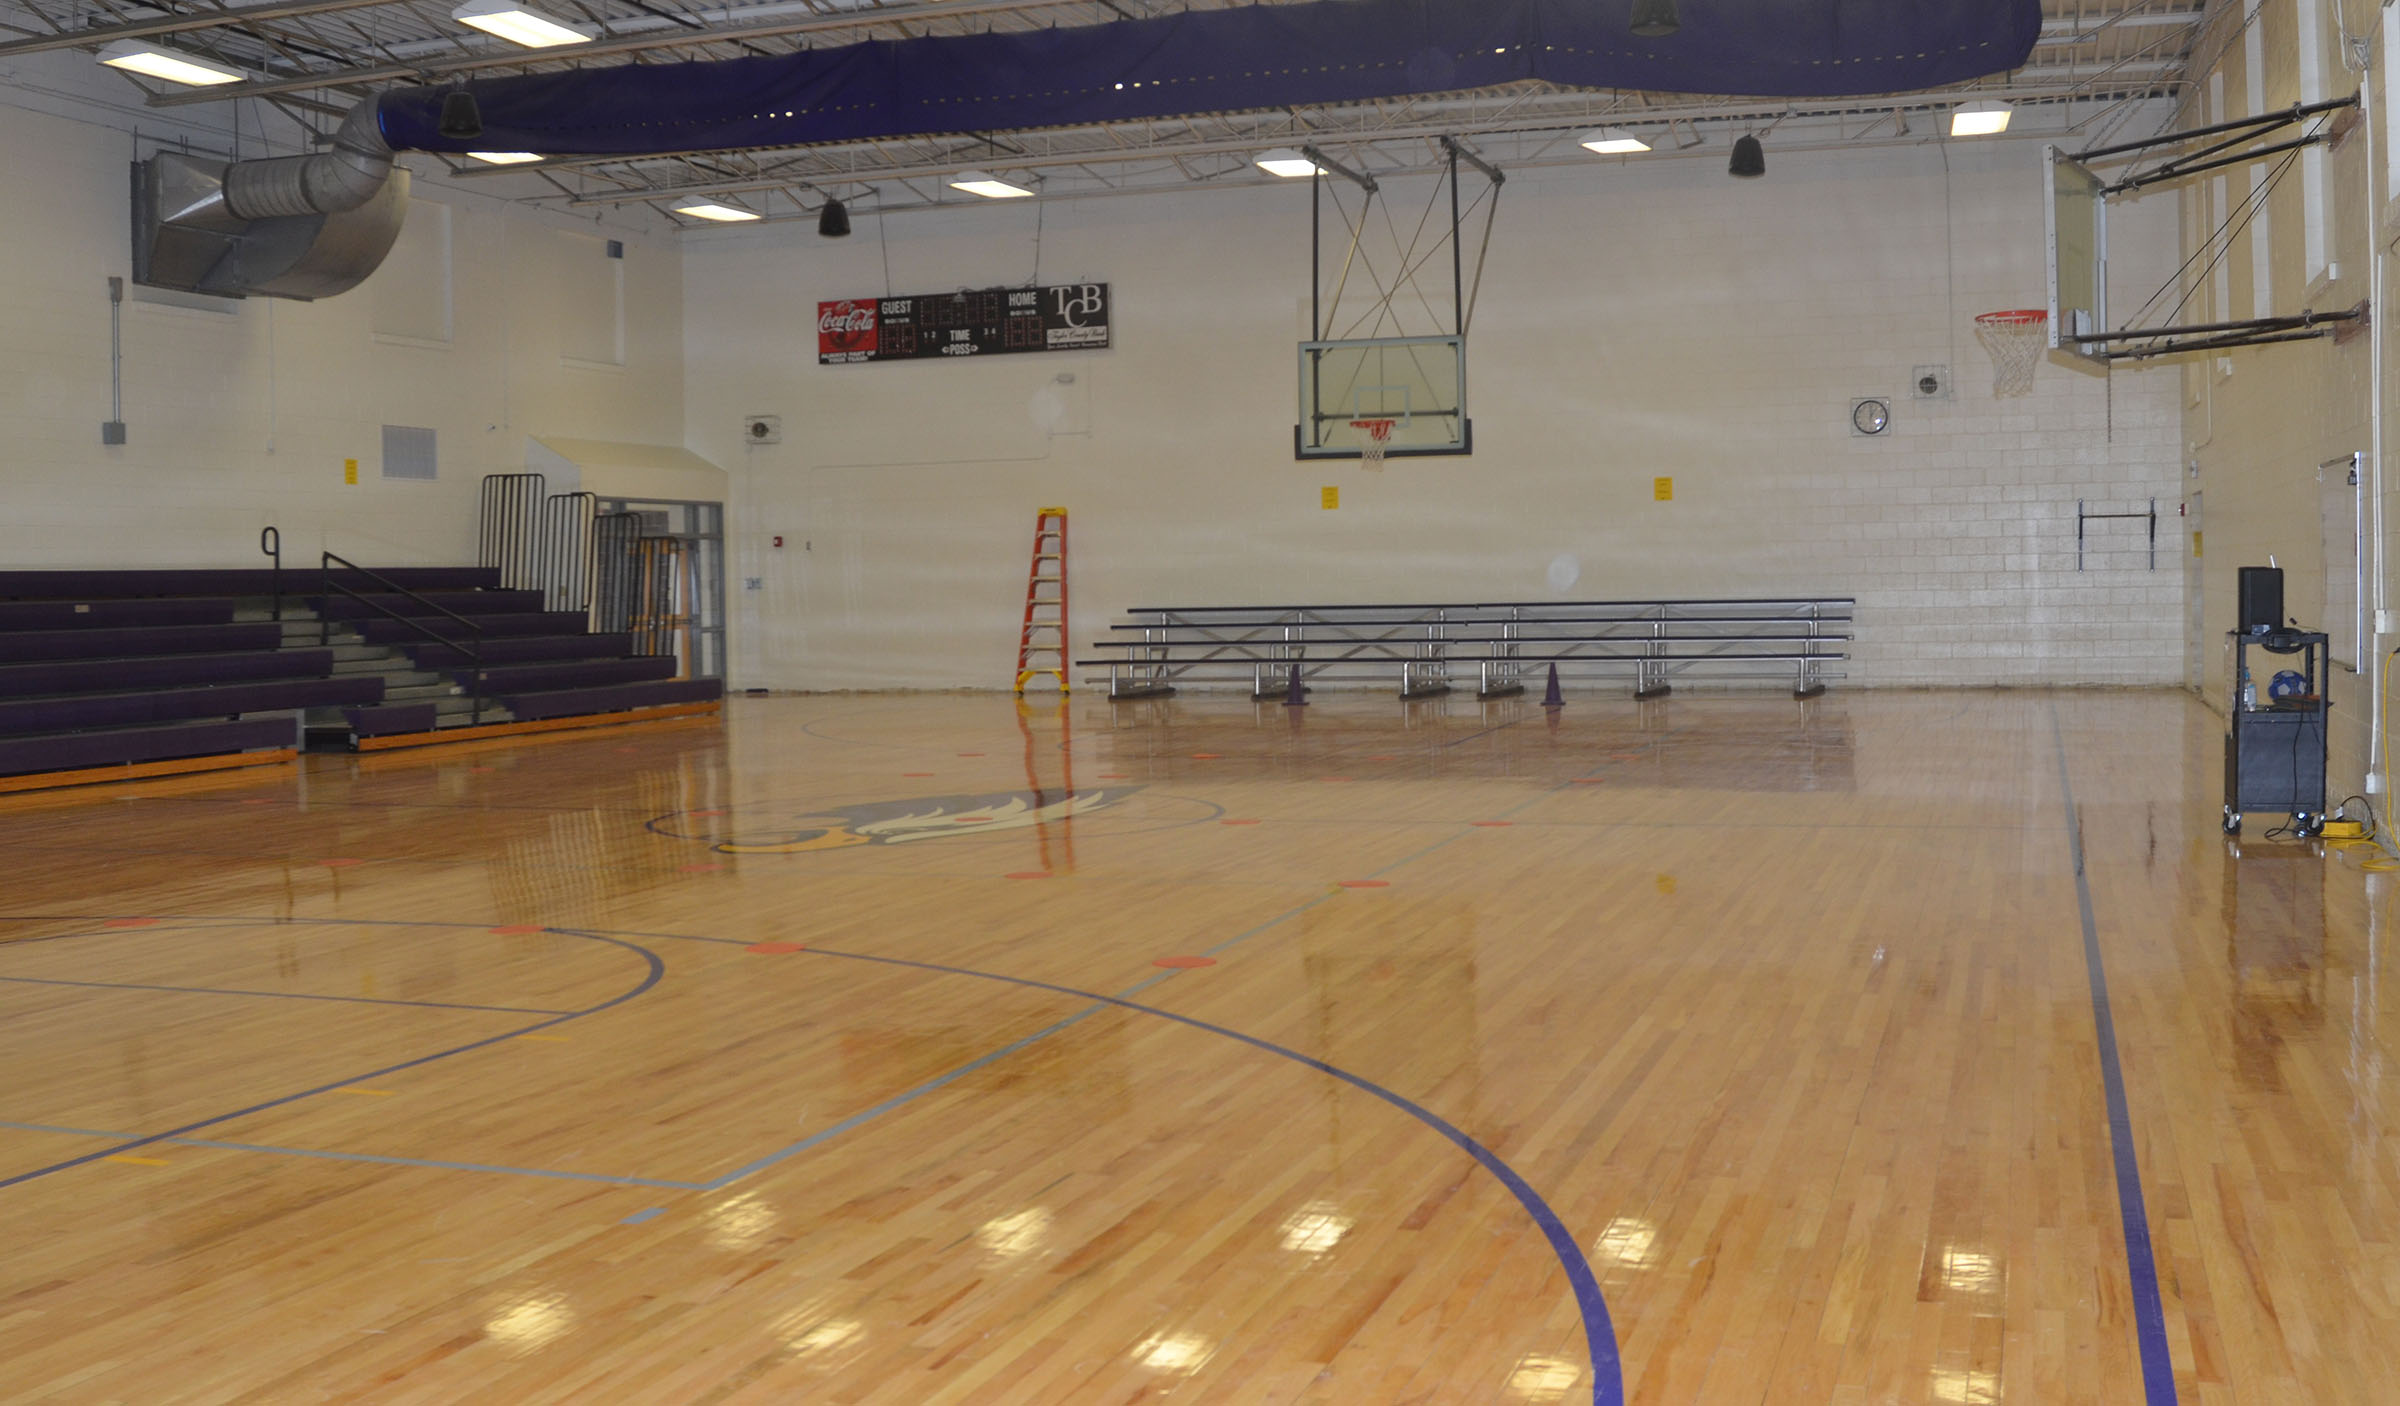 The CES gymnasium was recently renovated. The floor was refinished with a new design, the walls were painted and new bleachers were installed.